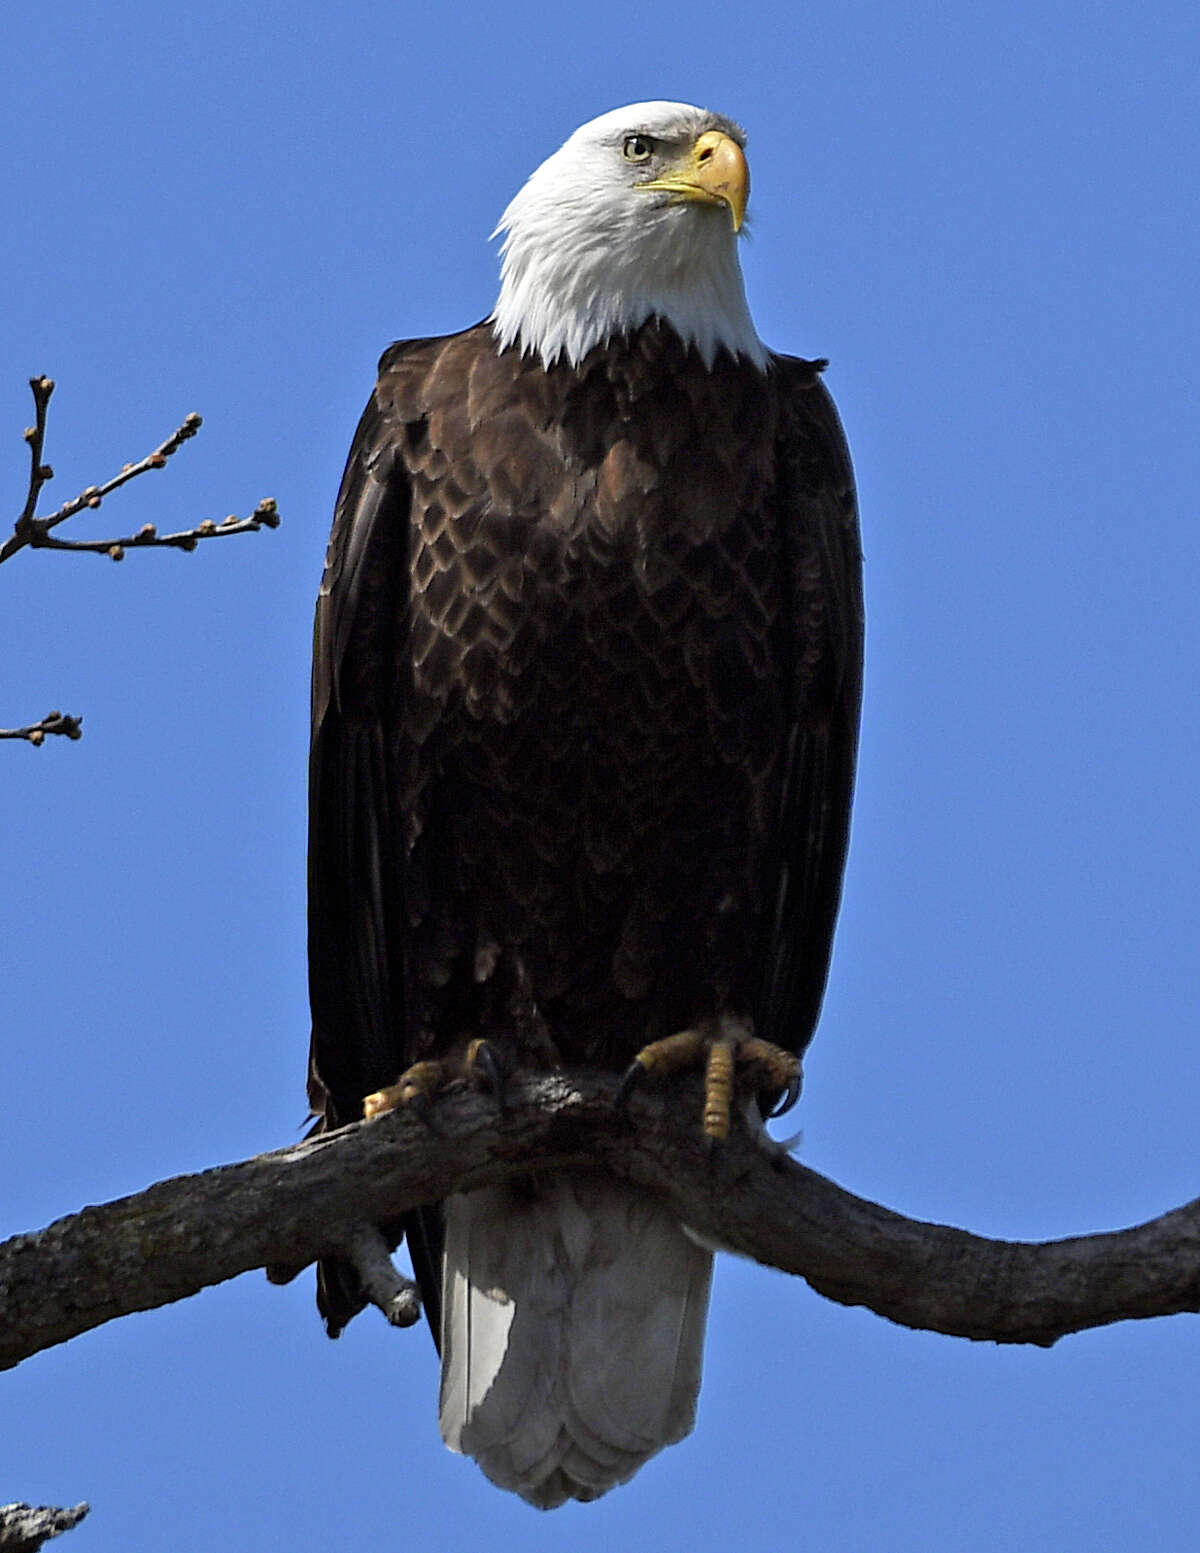 An eagle near its nest on an otherwise empty golf course along the Mohawk River in Saratoga County on Thursday, April 16, 2020. (Joyce Bassett / Special to the Times Union)